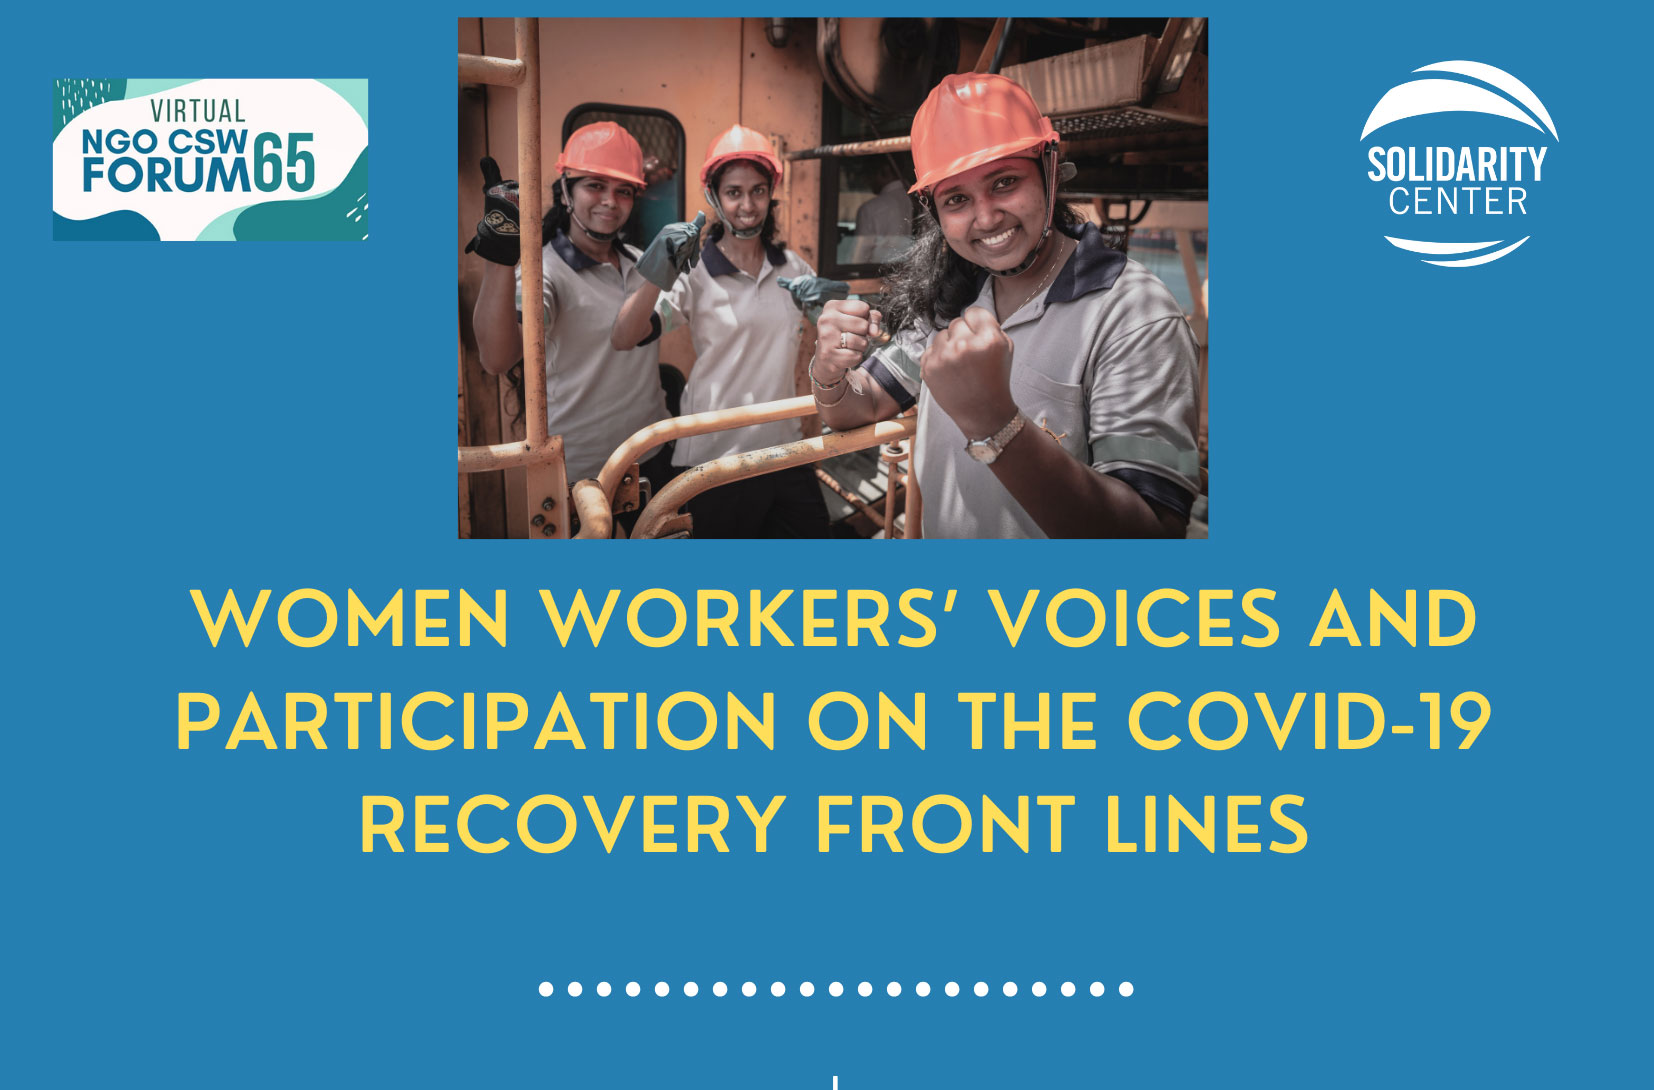 Union Women on the COVID-19 Front Lines: The Road to Recovery